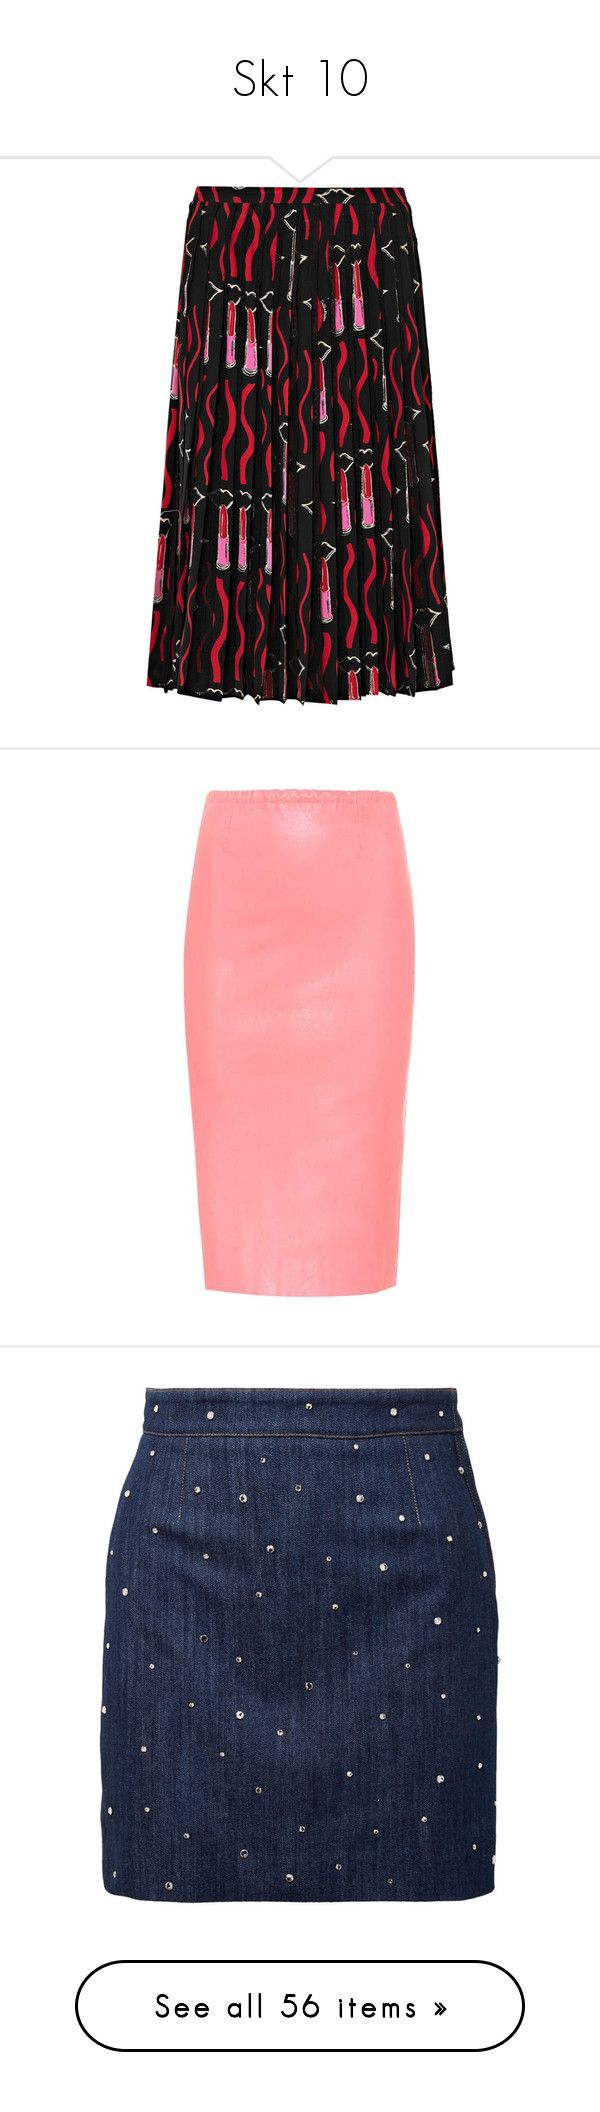 """Skt 10"" by lashanna-bing ❤ liked on Polyvore featuring skirts, black, colorful skirts, pleated skirt, print skirt, multi colored skirt, lace trim skirt, pink, red knee length skirt and pencil skirt"